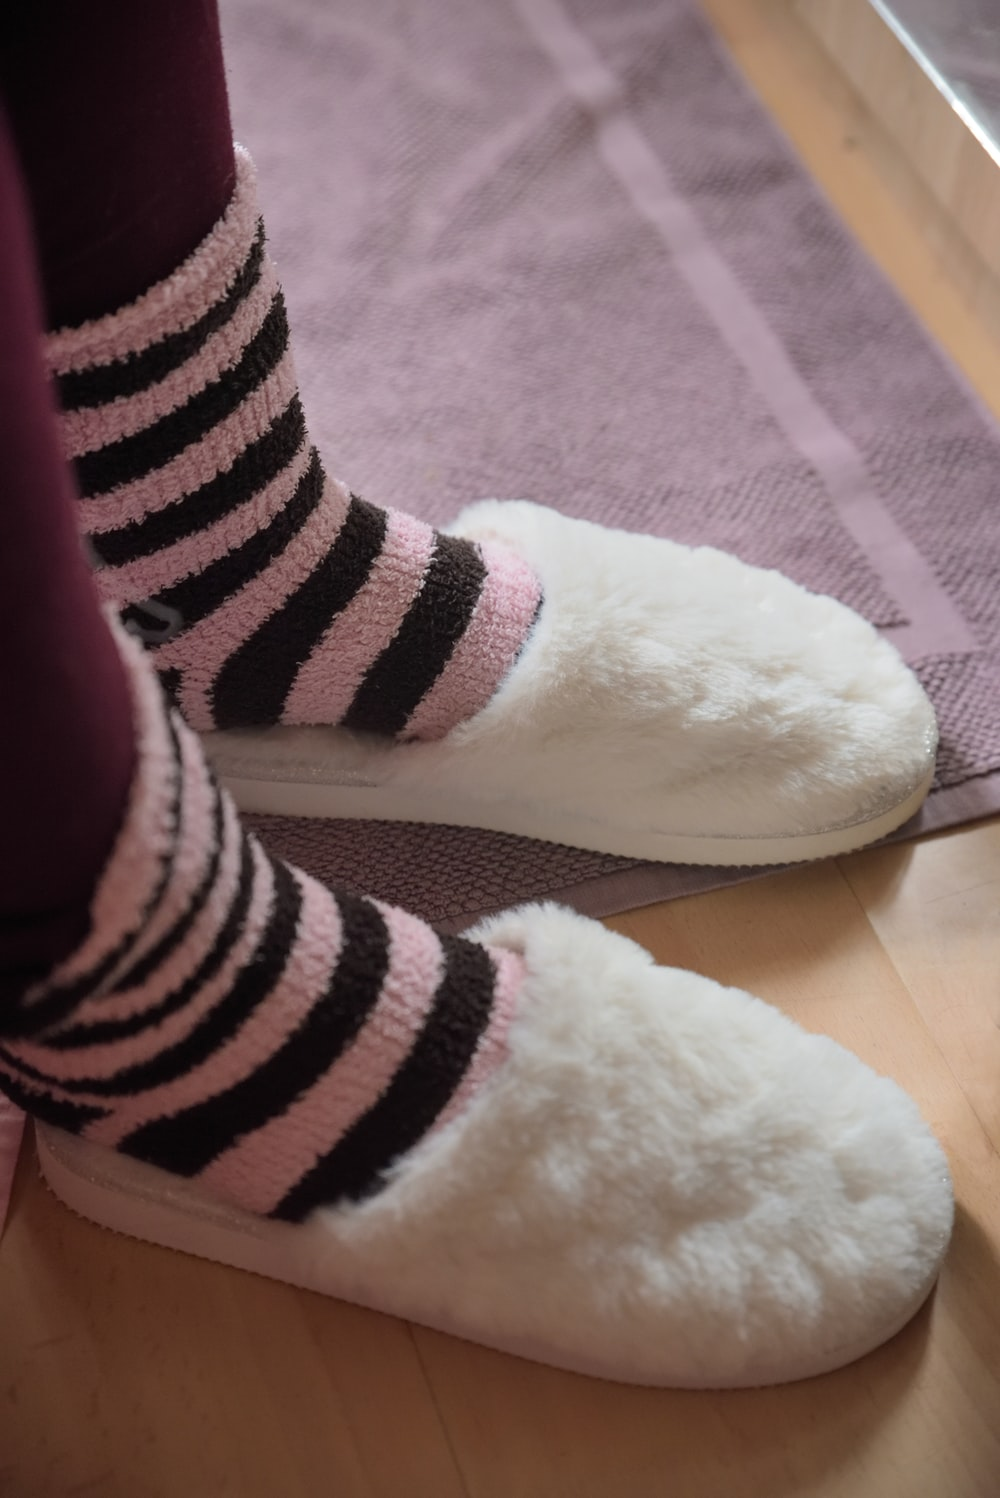 person wearing white bedroom slippers